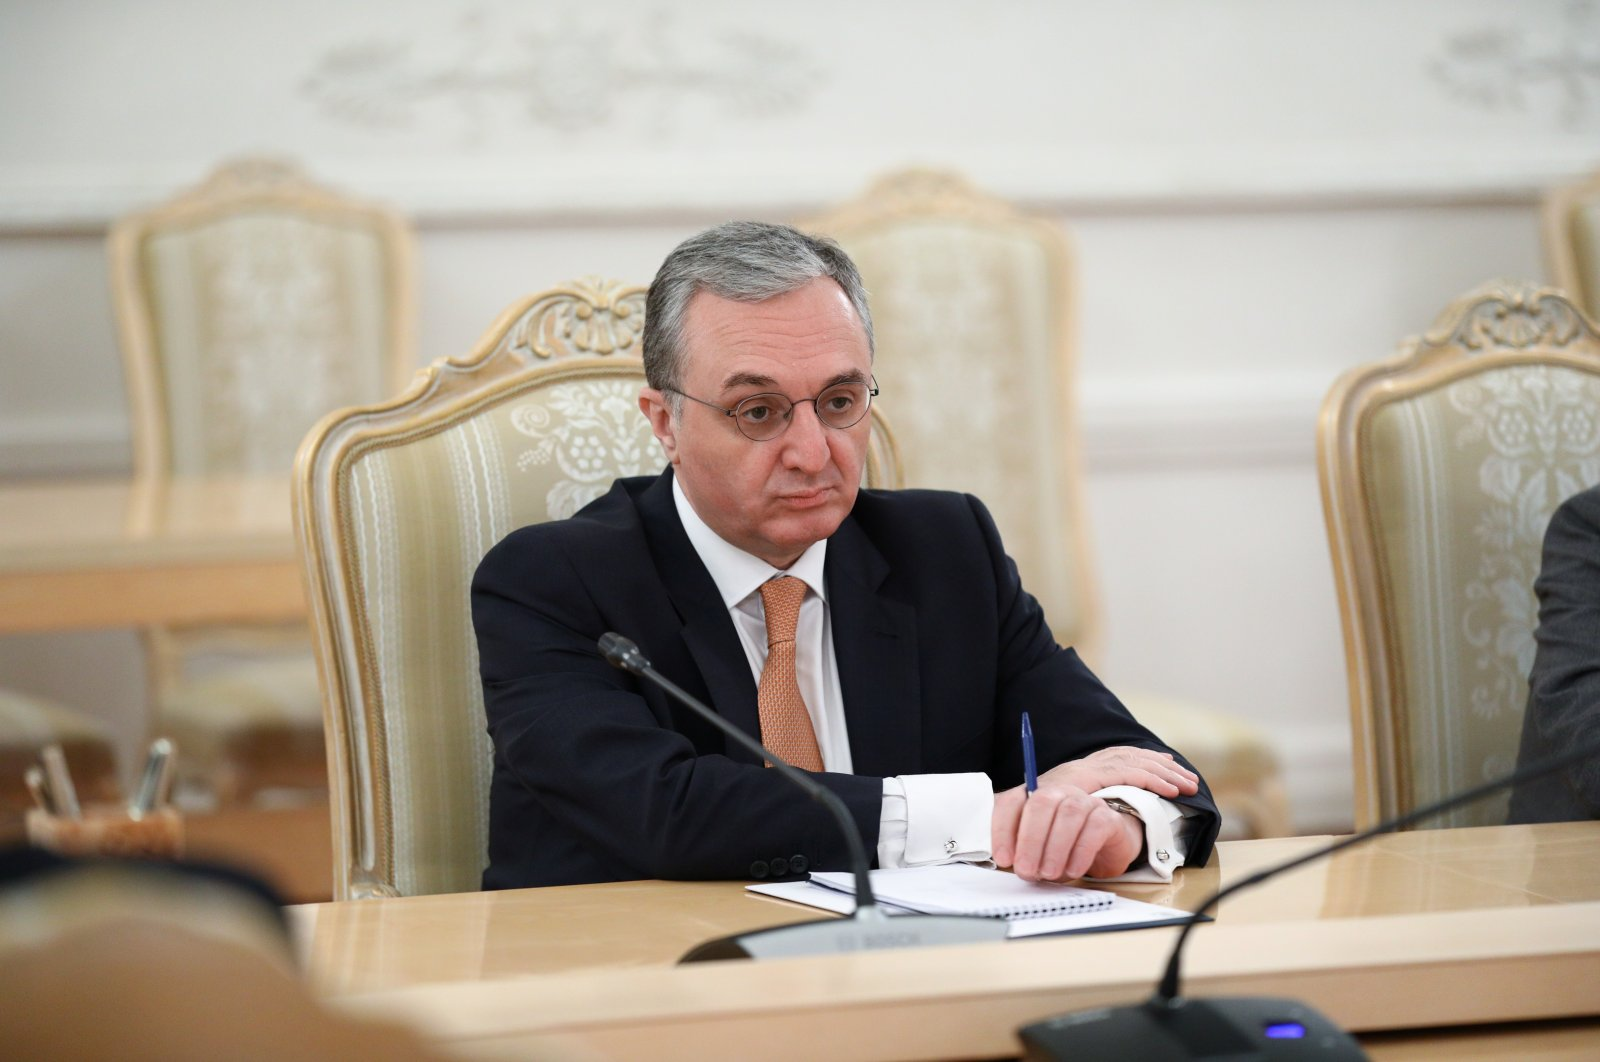 Armenian Foreign Minister Zohrab Mnatsakanyan attends a meeting with his Russian counterpart Sergey Lavrov in Moscow, Russia Oct. 21, 2020. (REUTERS Photo)